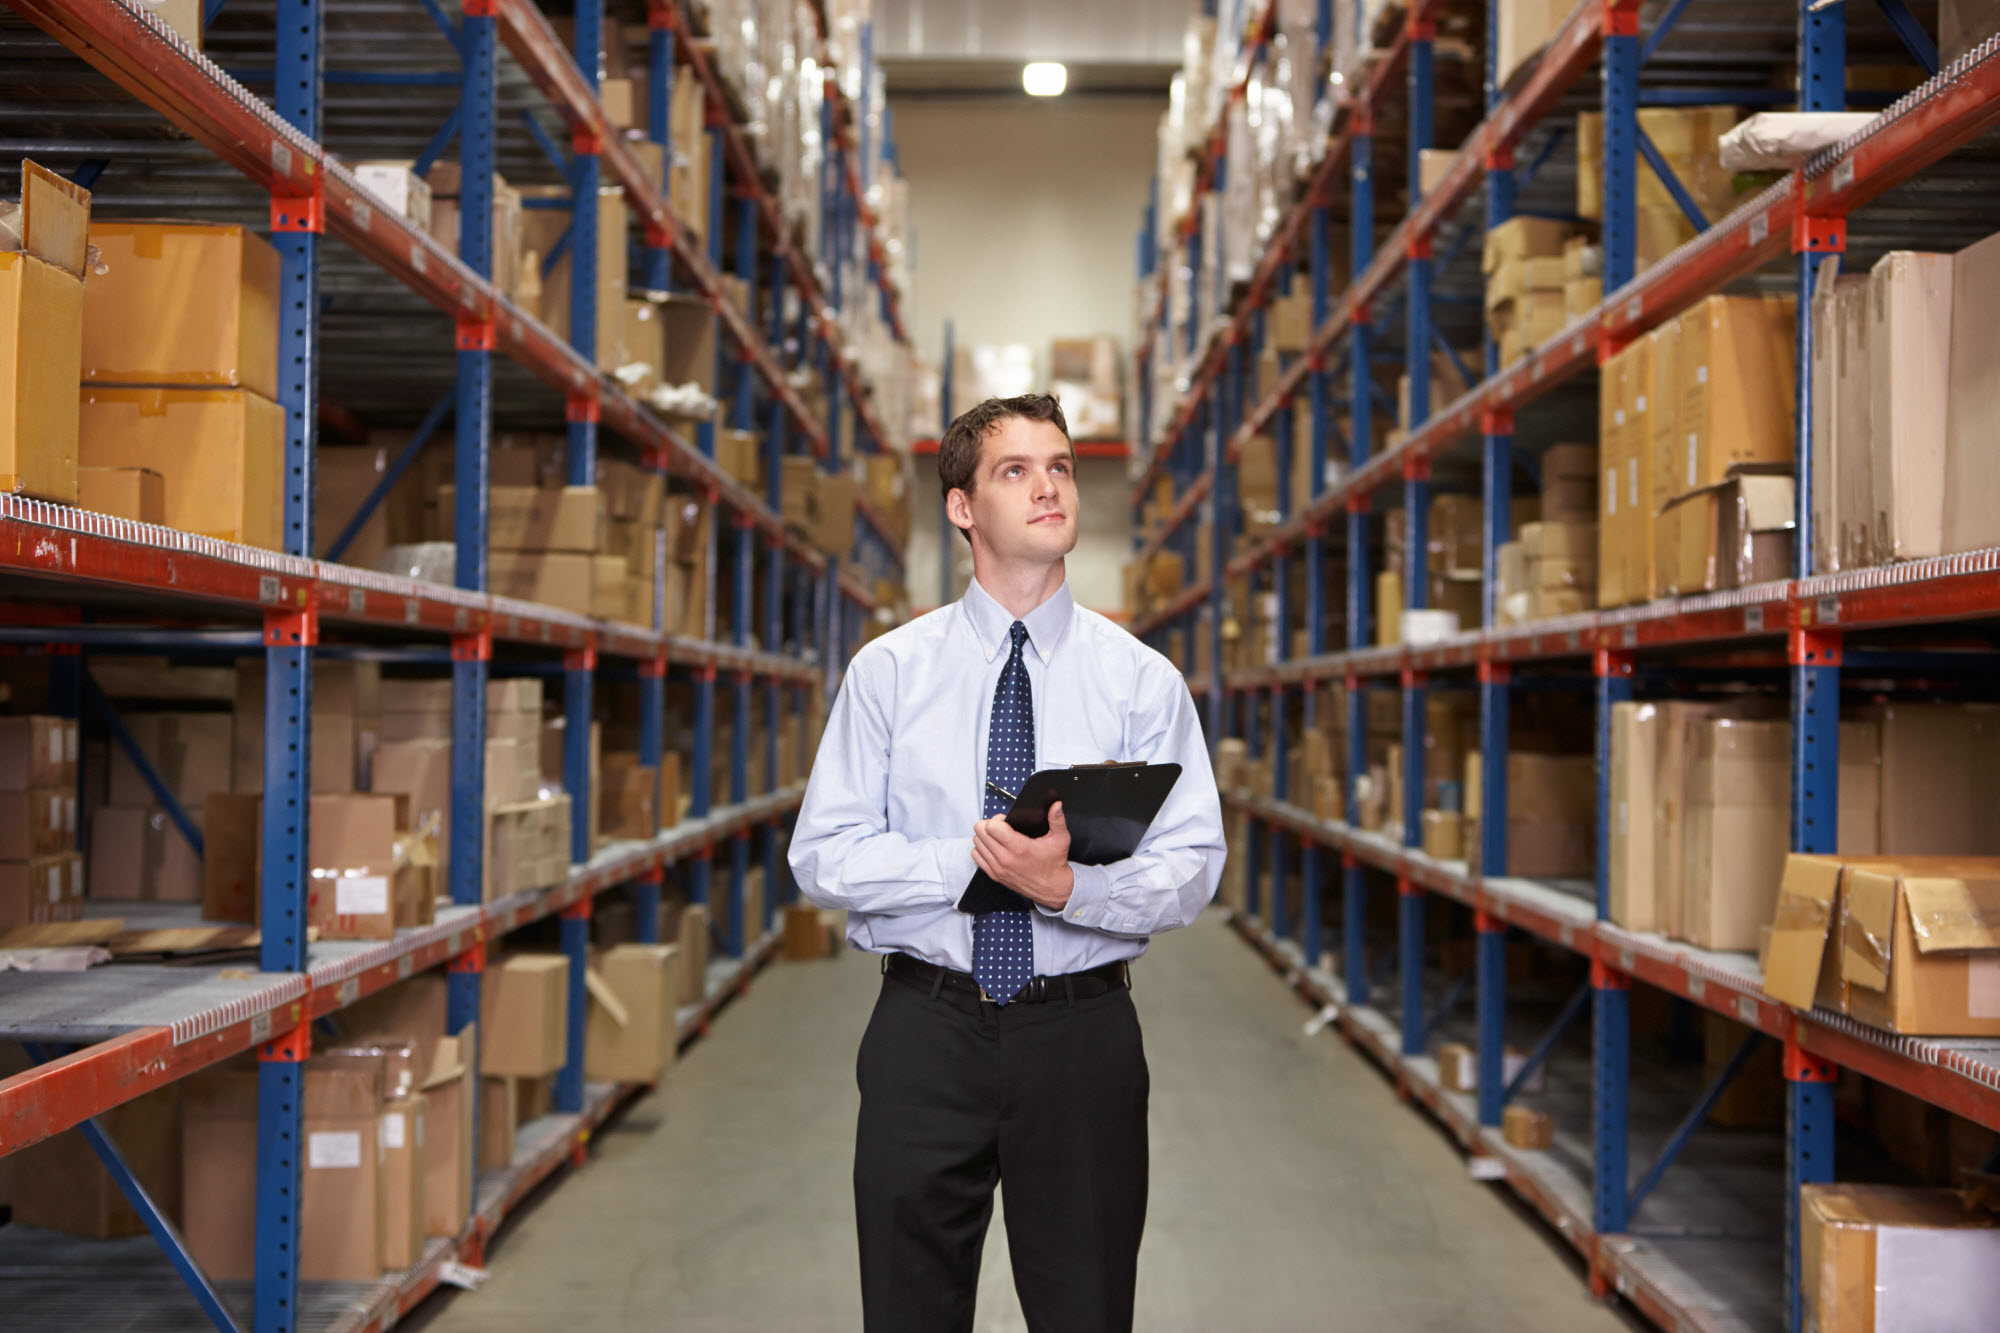 warehouse-management-system-wms_0-1